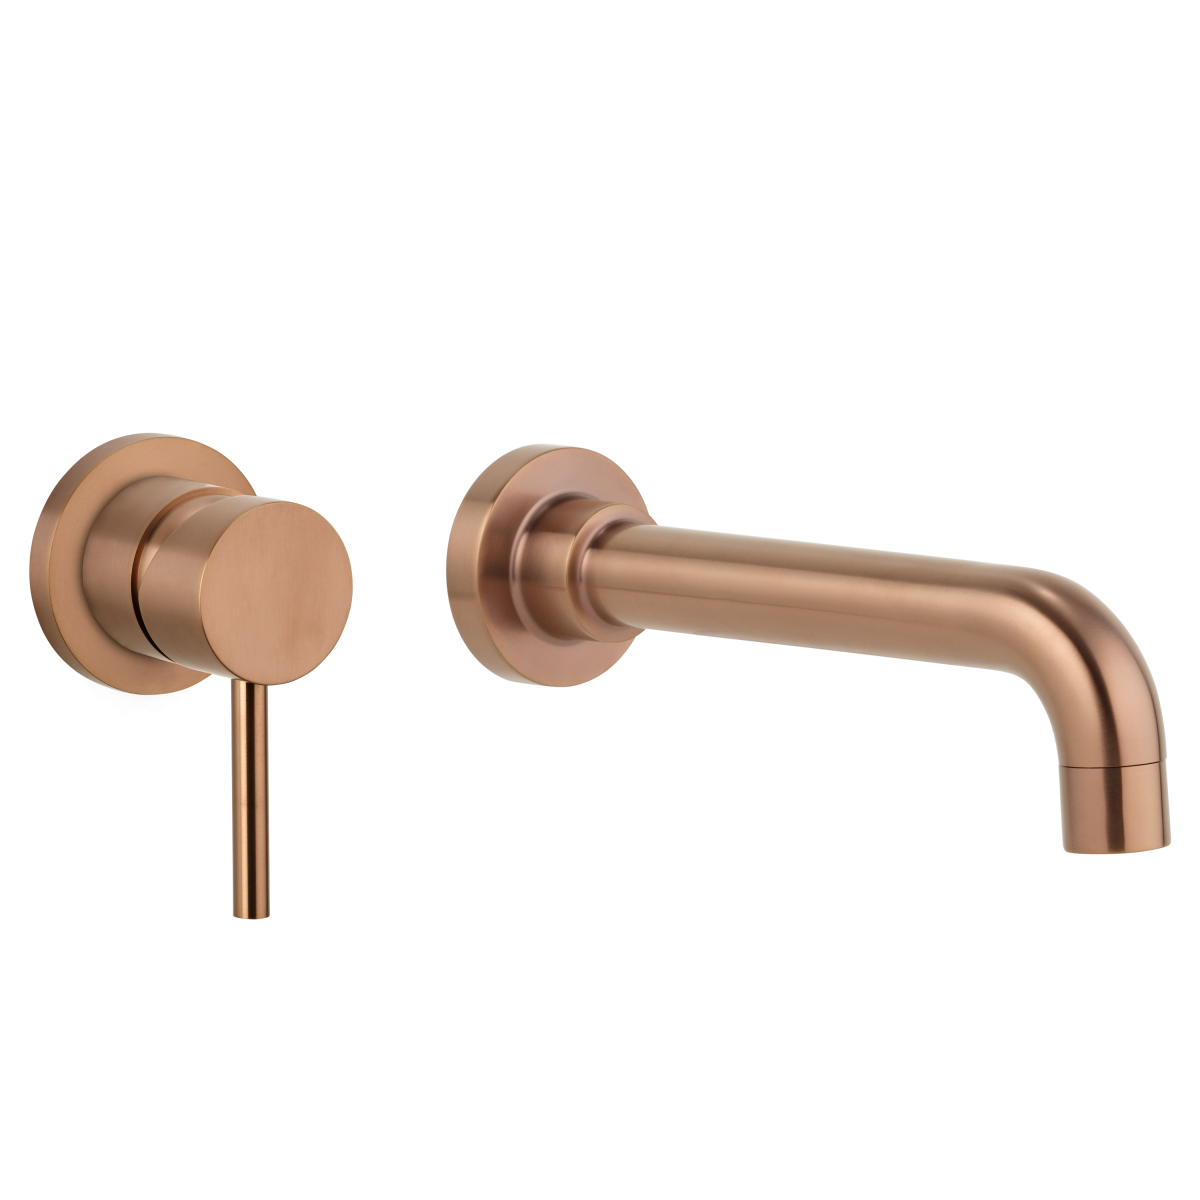 Copper Tapware | Copper Sinks | Buy Online | 50+ Copper Styles In Stock